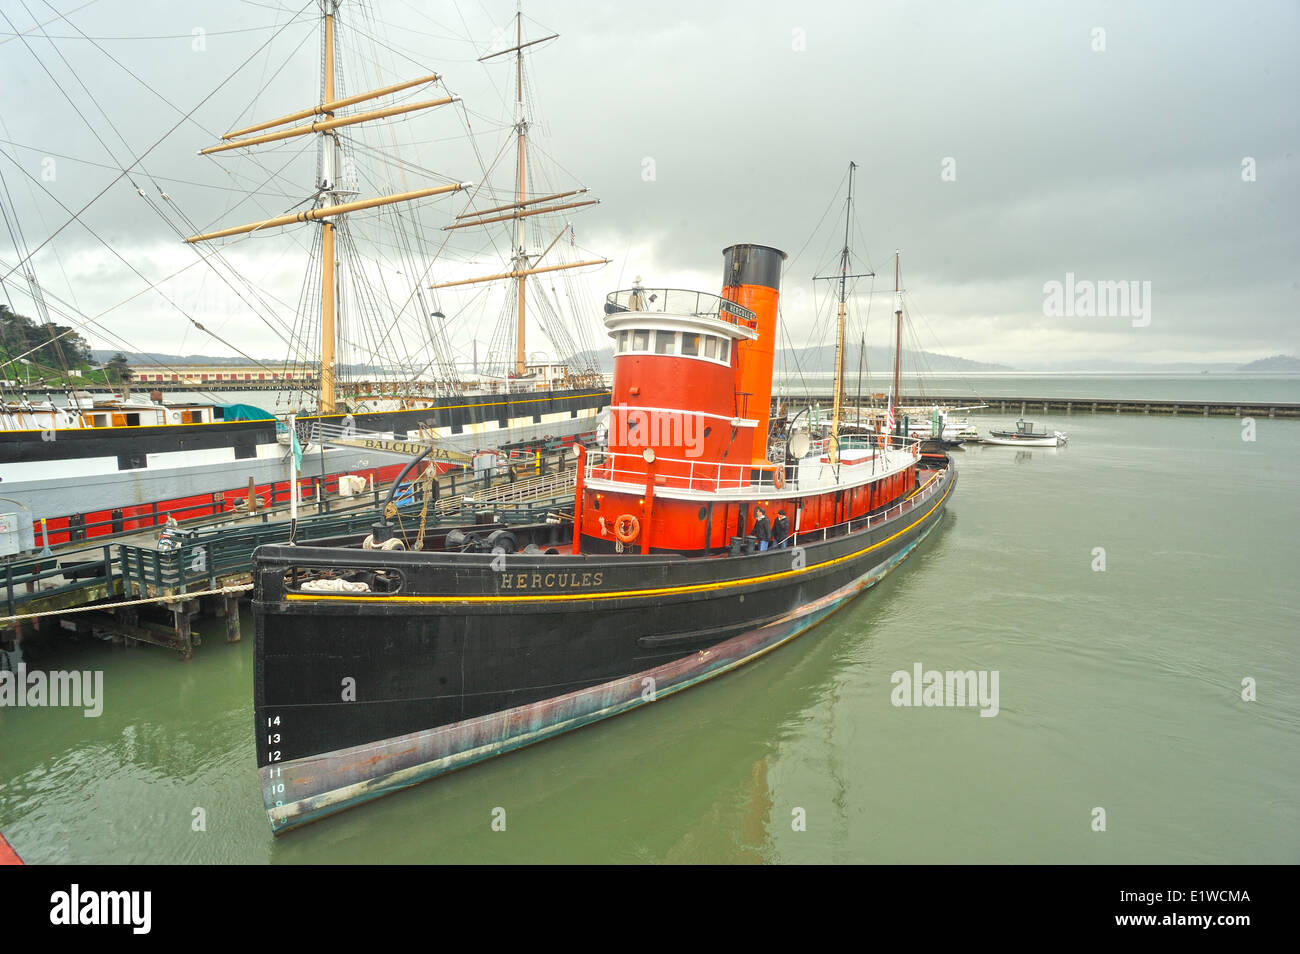 historic tug 'Hercules', maritime museum, San Francisco, California, USA - Stock Image